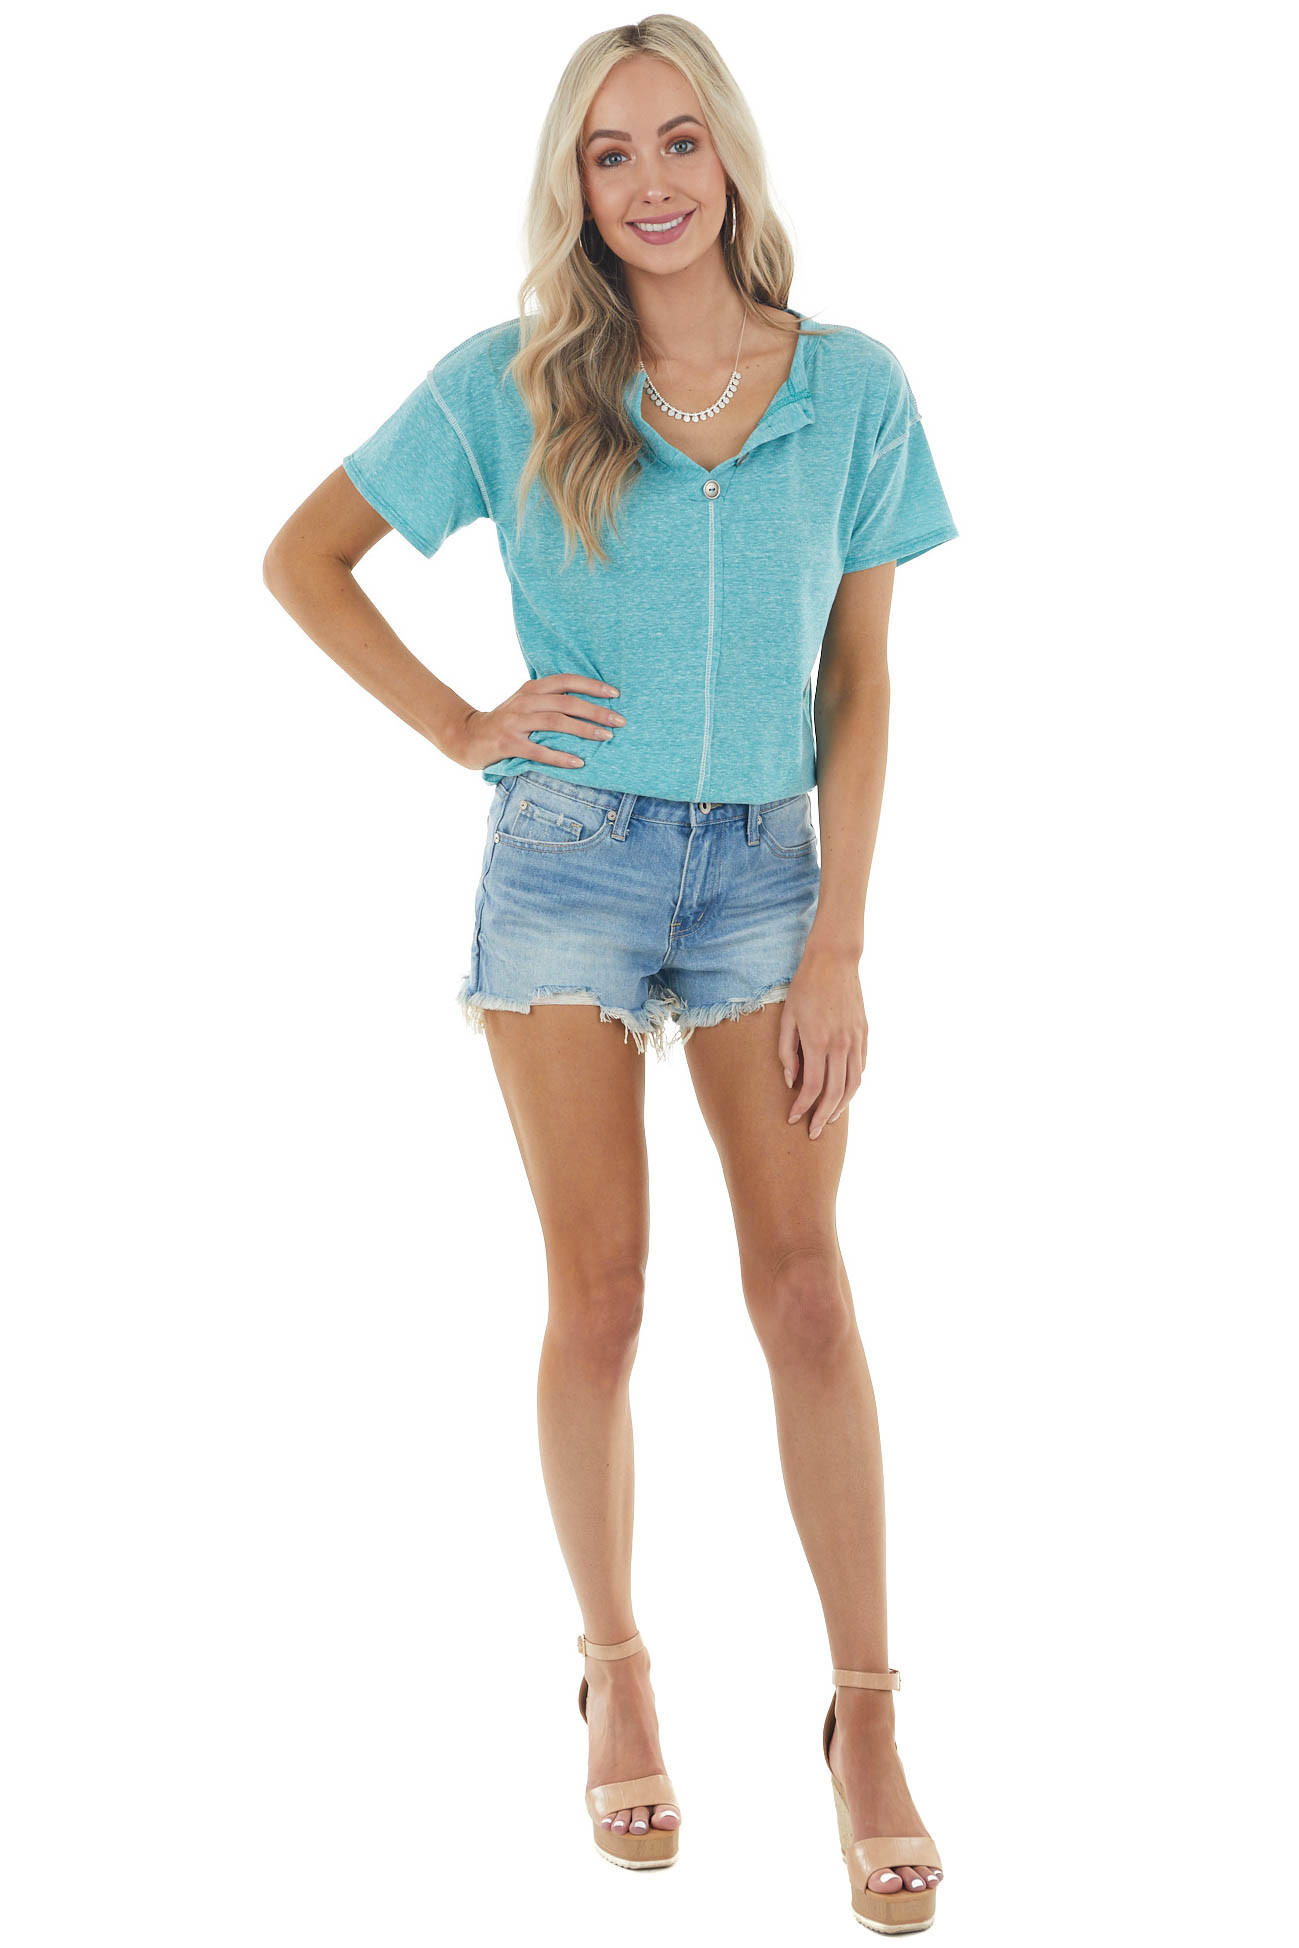 Teal Short Sleeve V Neck Top with Button Detail